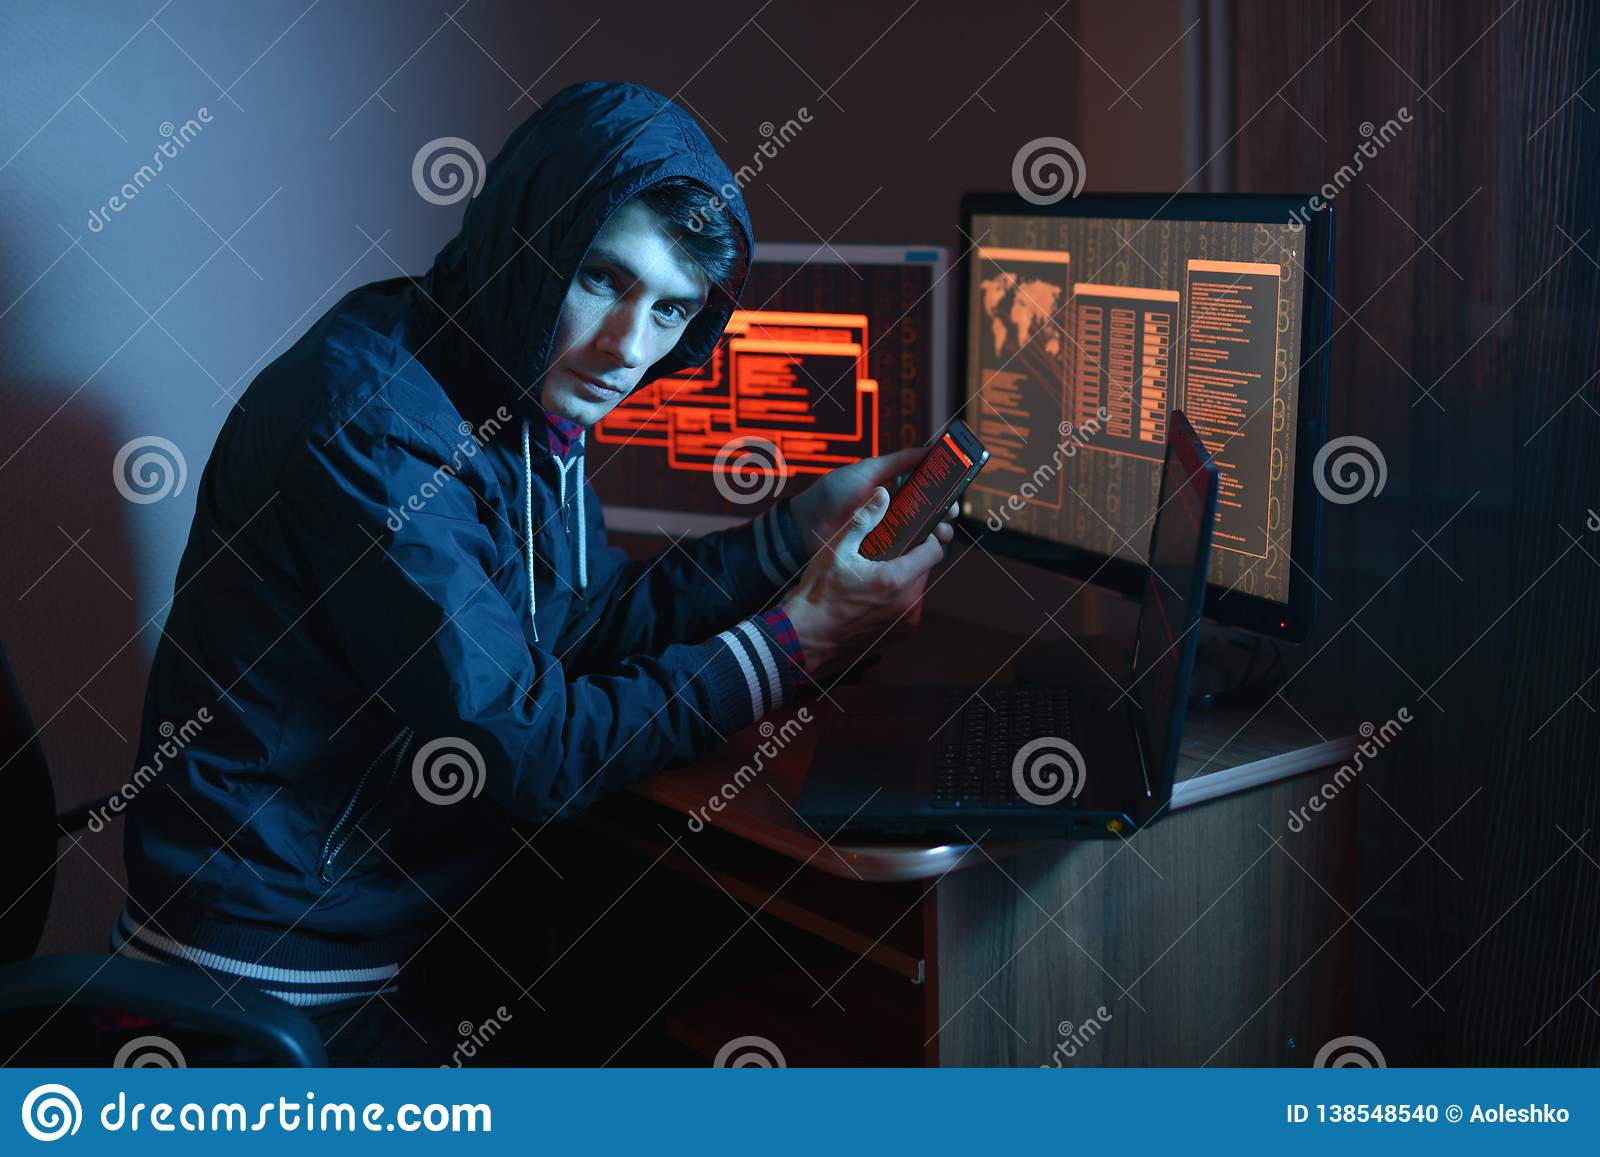 Hacker In The Hood Holding The Phone In His Hands Trying To Hack The